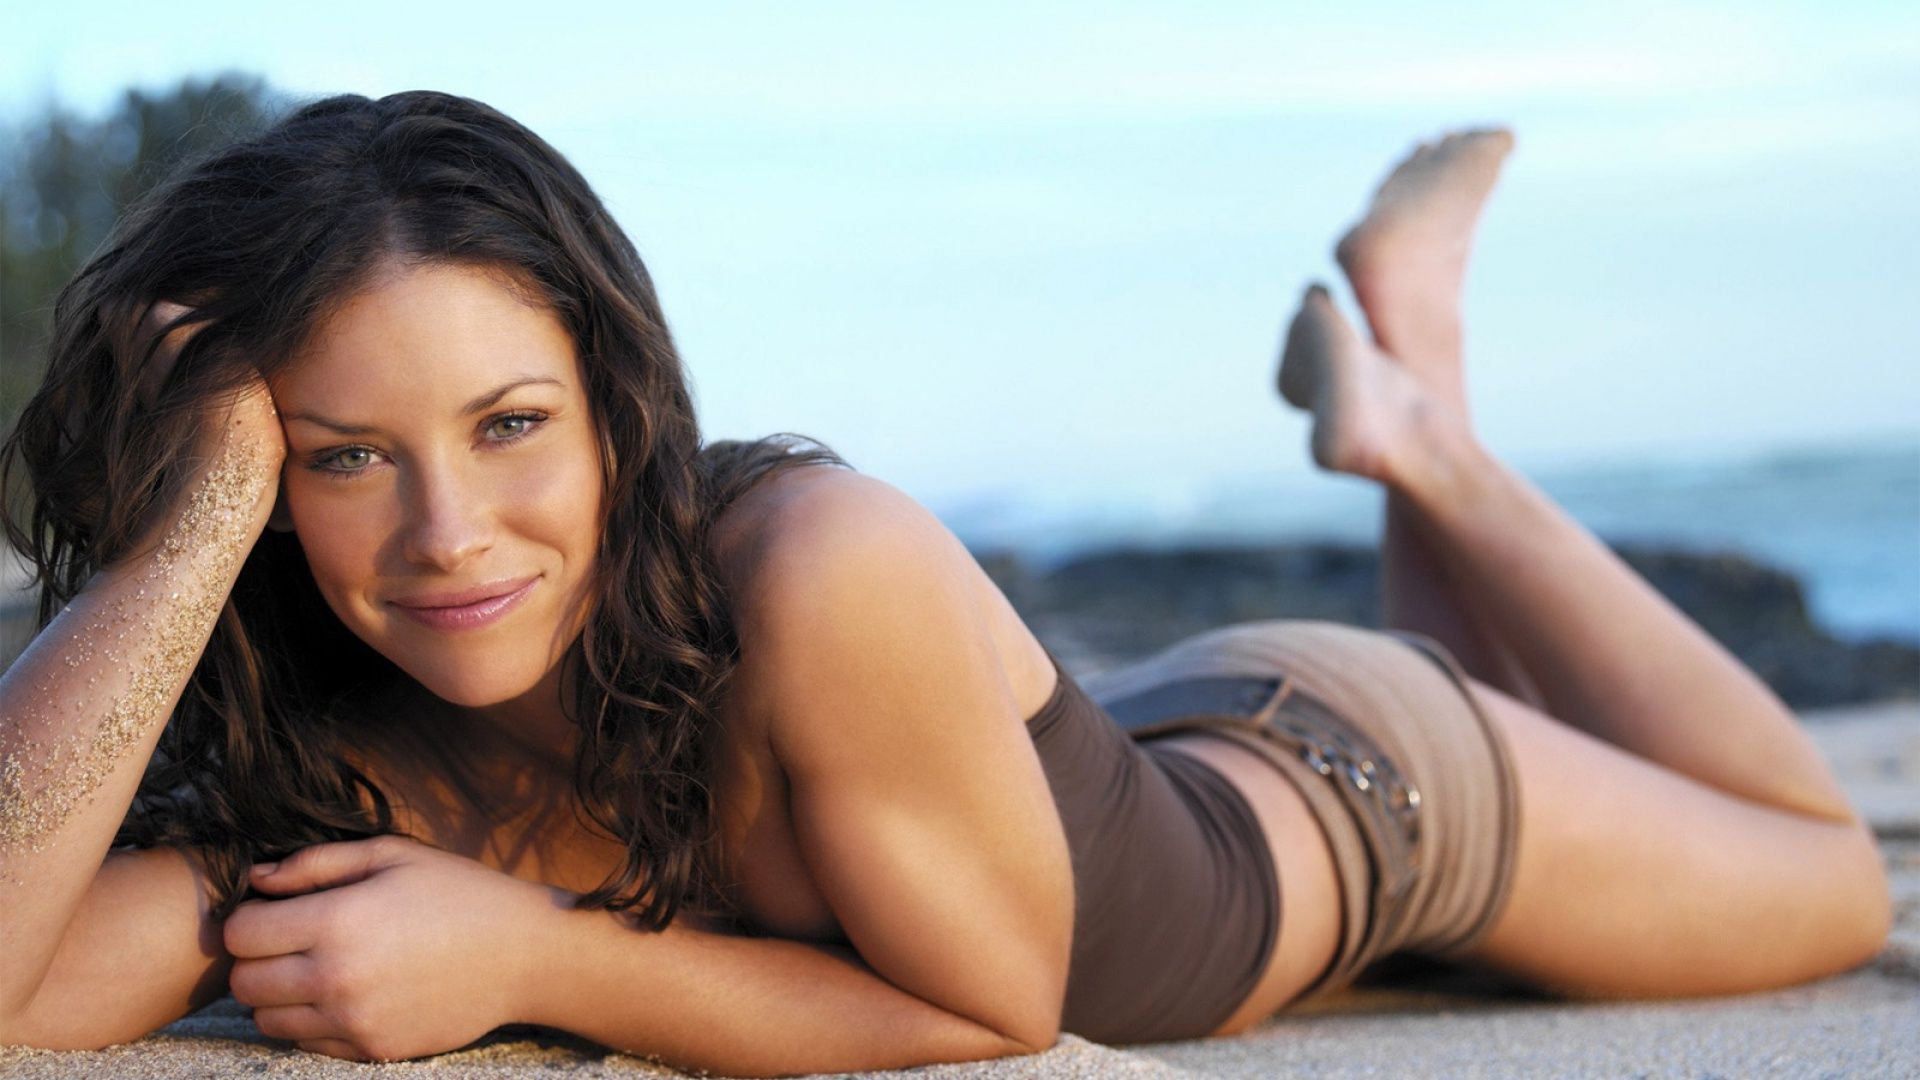 Evangeline Lilly in the sand wallpaper 38347 1920x1080